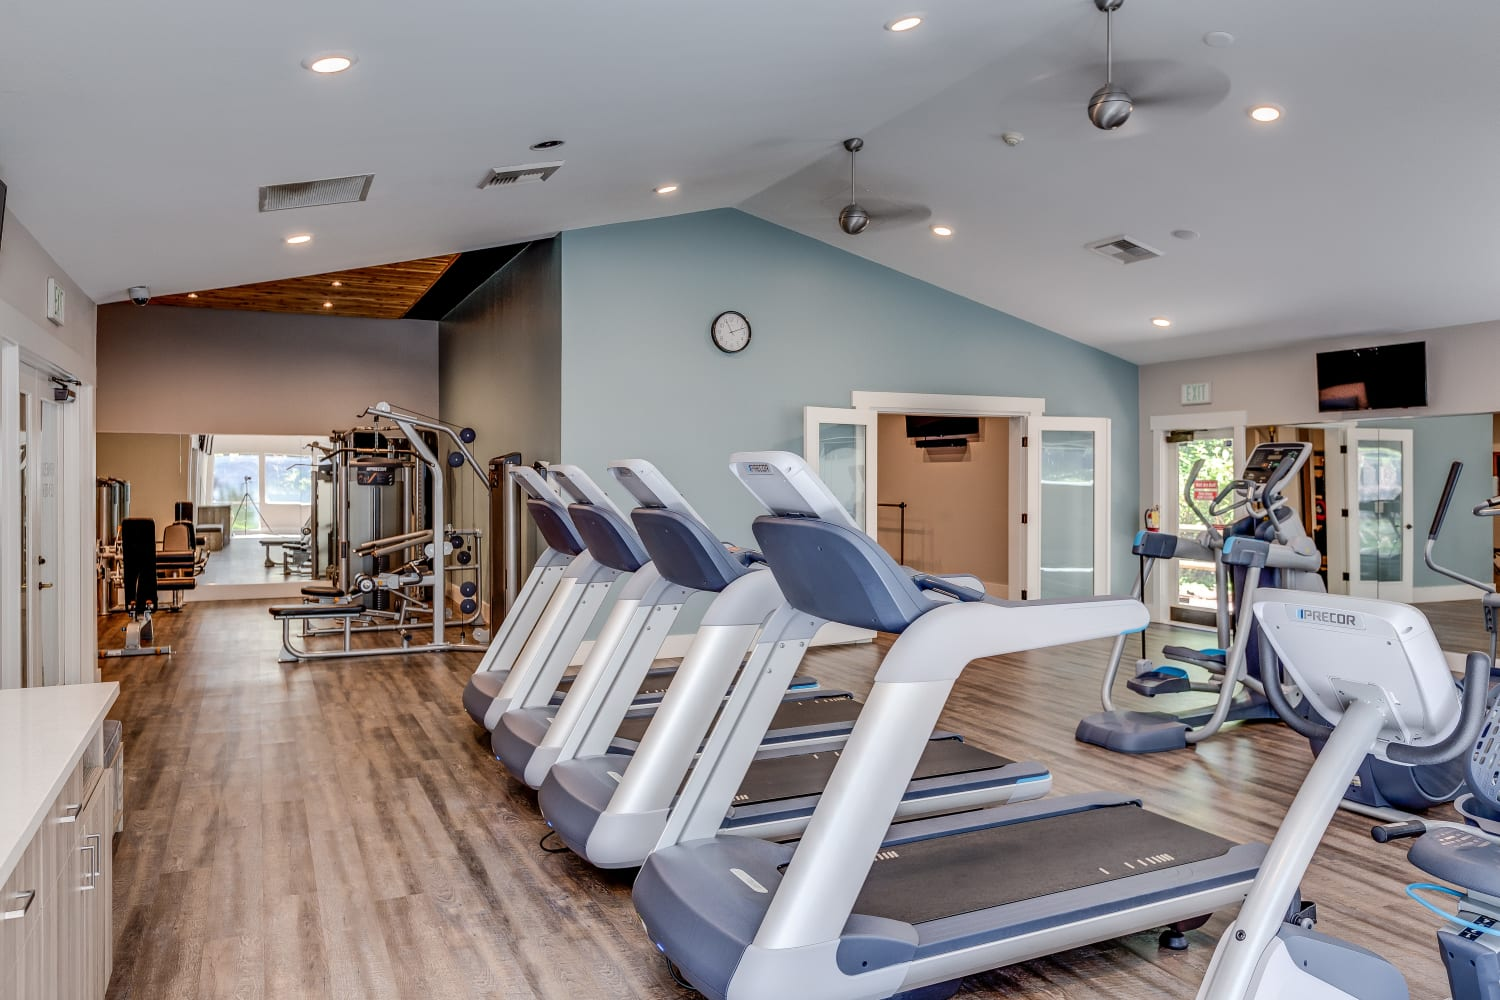 A fully equipped fitness center at The Preserve at Forbes Creek in Kirkland, Washington